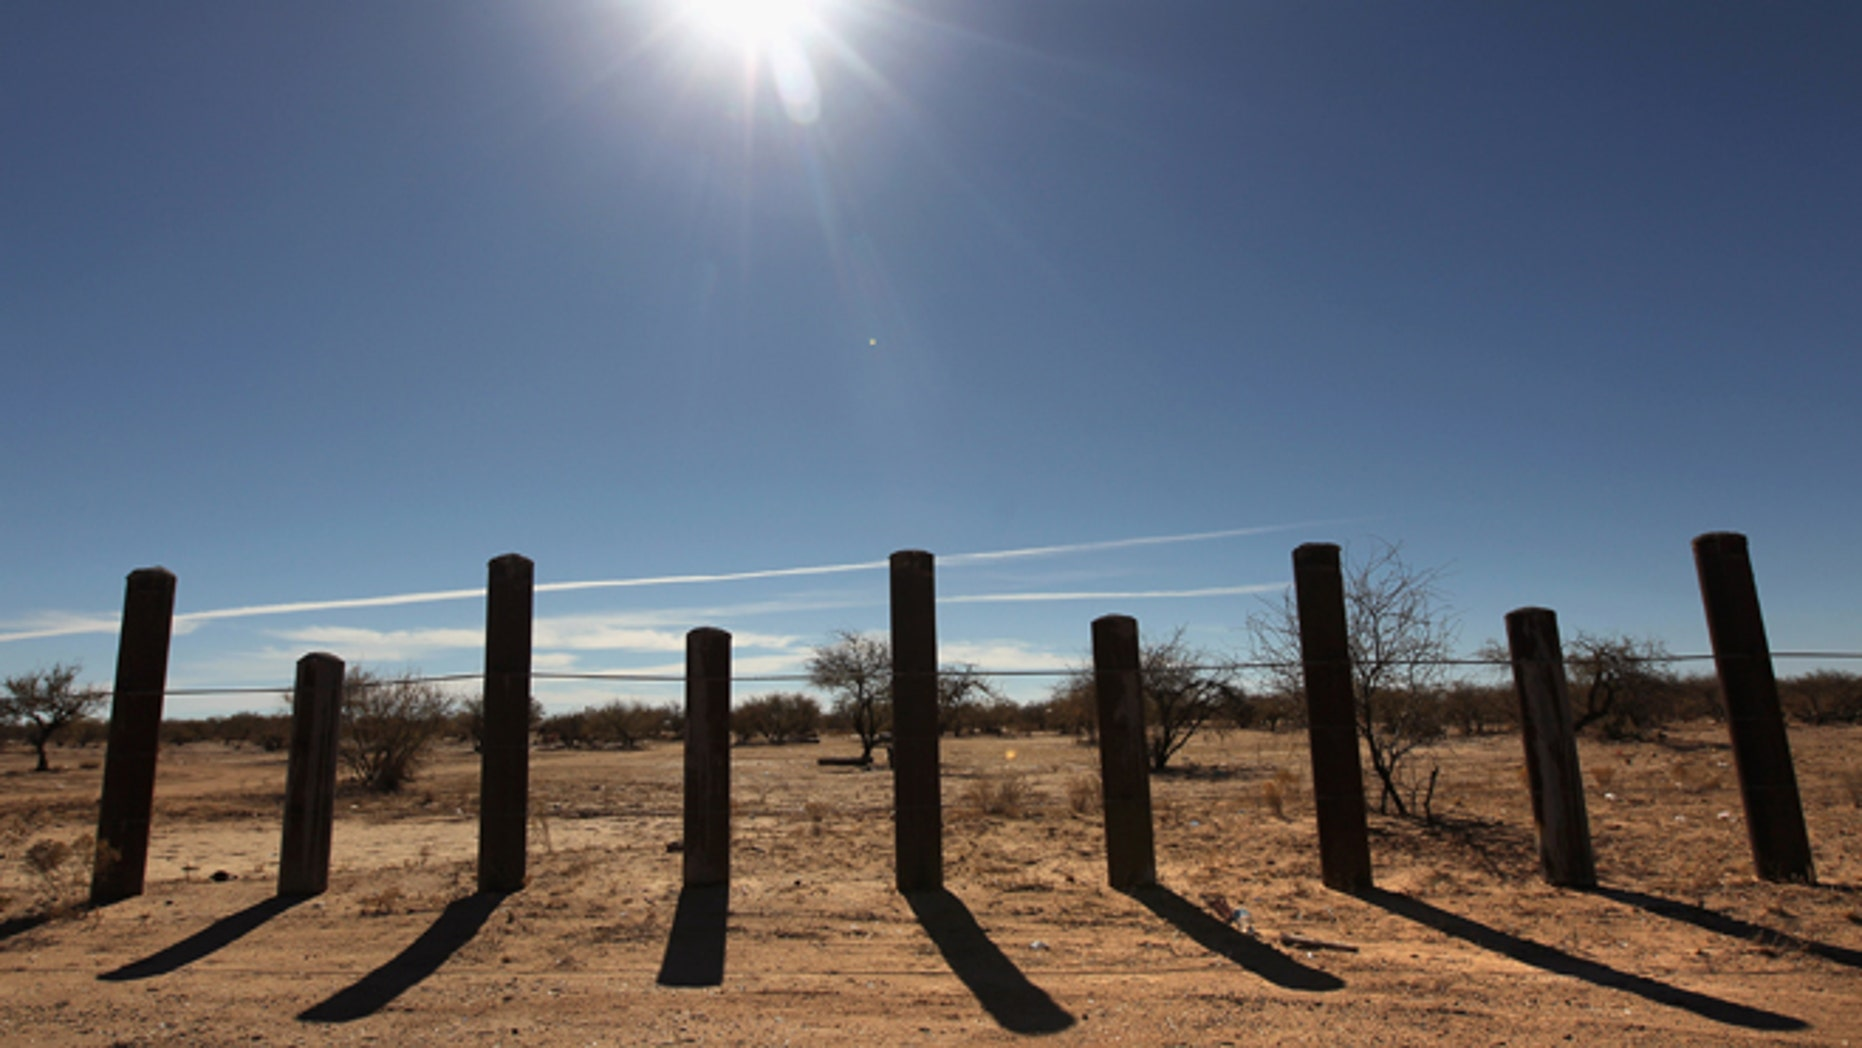 The U.S. Mexico border on the Sonoran Desert on January 18, 2011 in the Tohono O'odham Nation, Arizona.